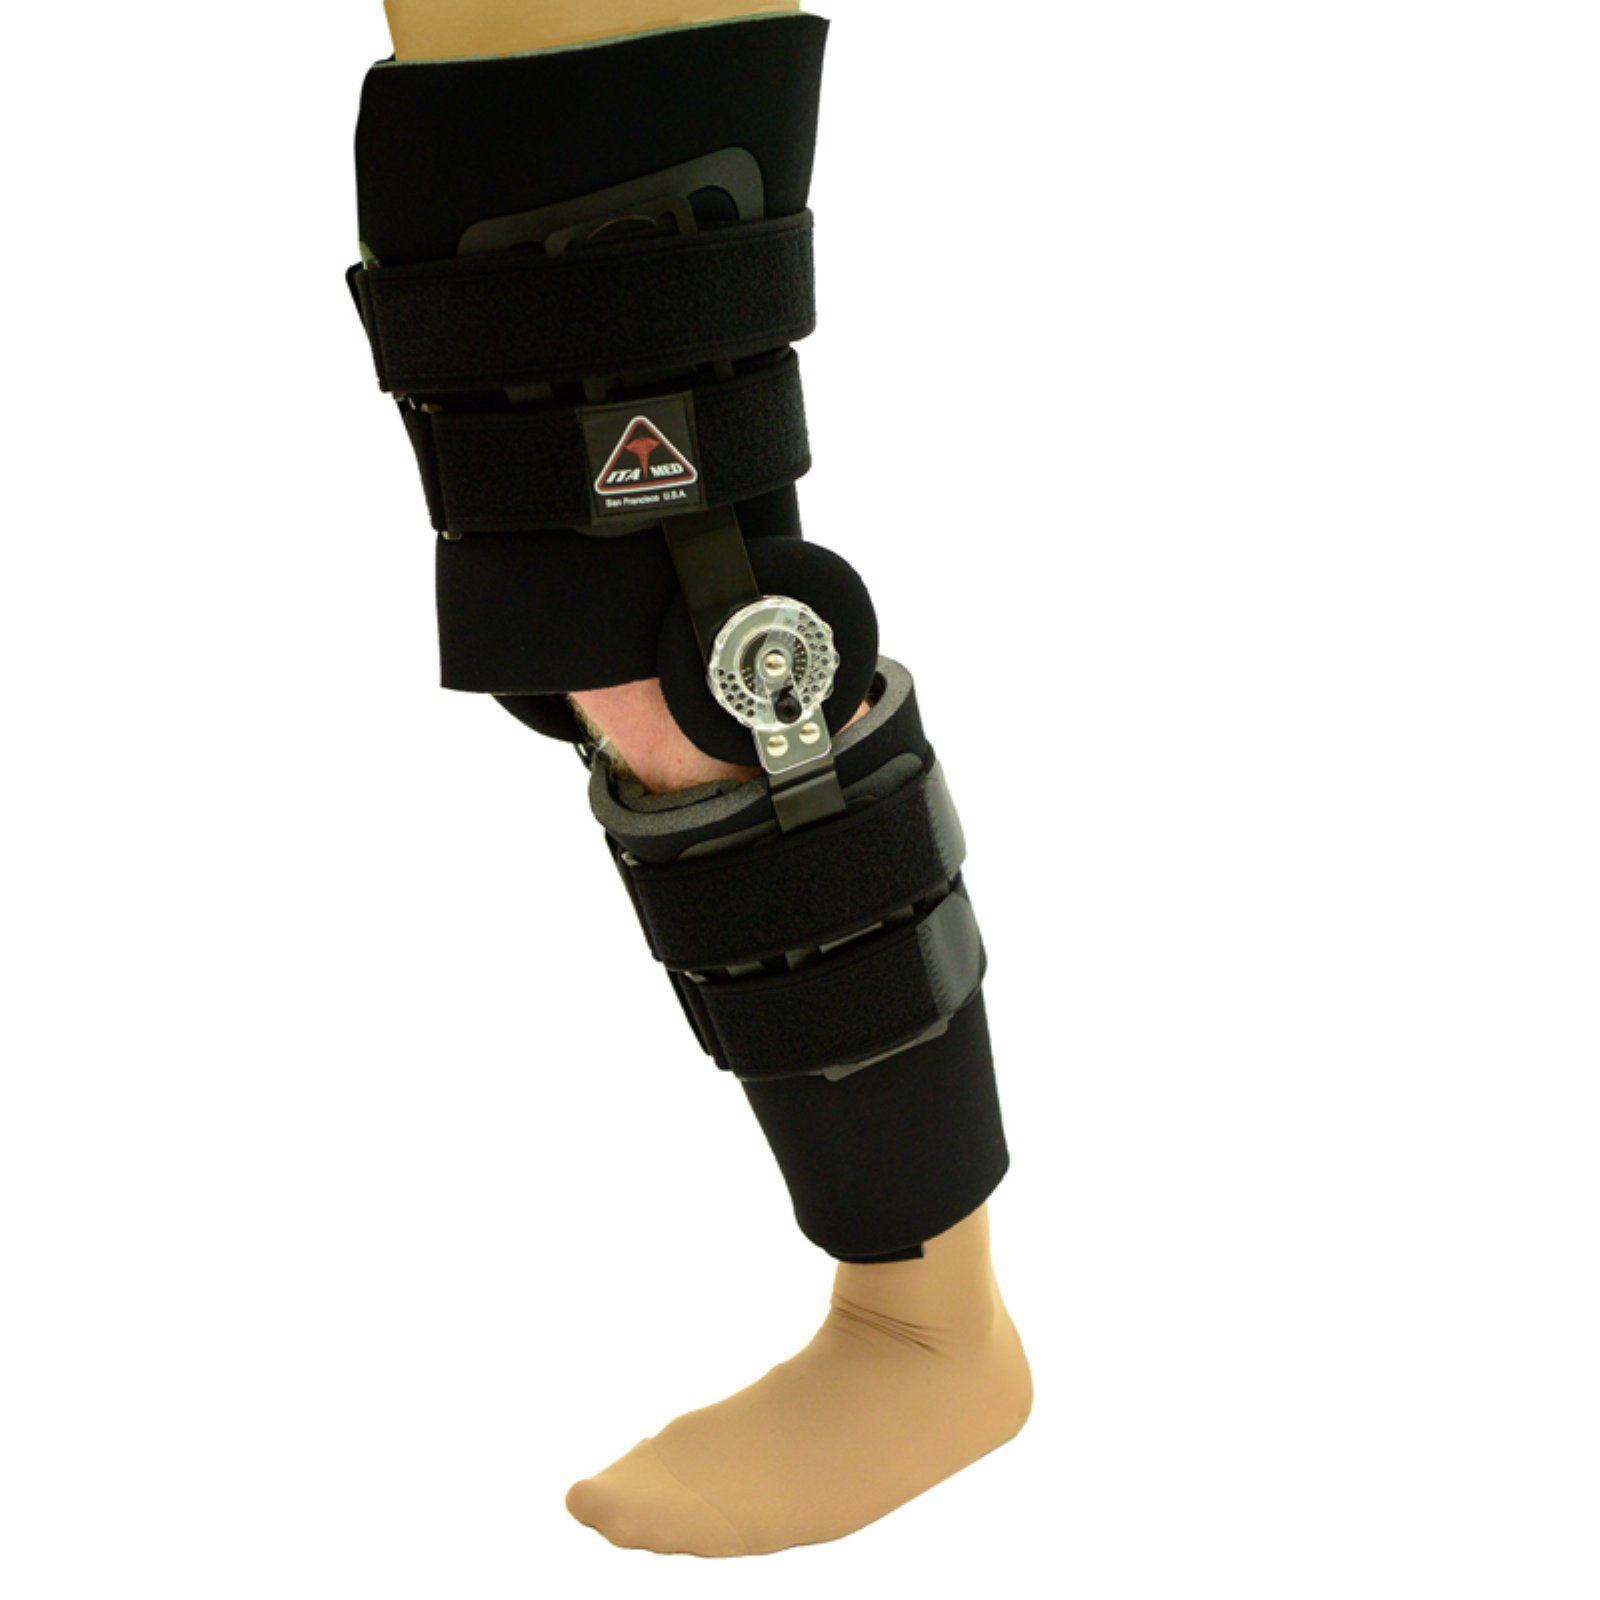 54ca0fff63 ITA-MED Range of Motion Post Operative Knee Brace | Products in 2019 ...